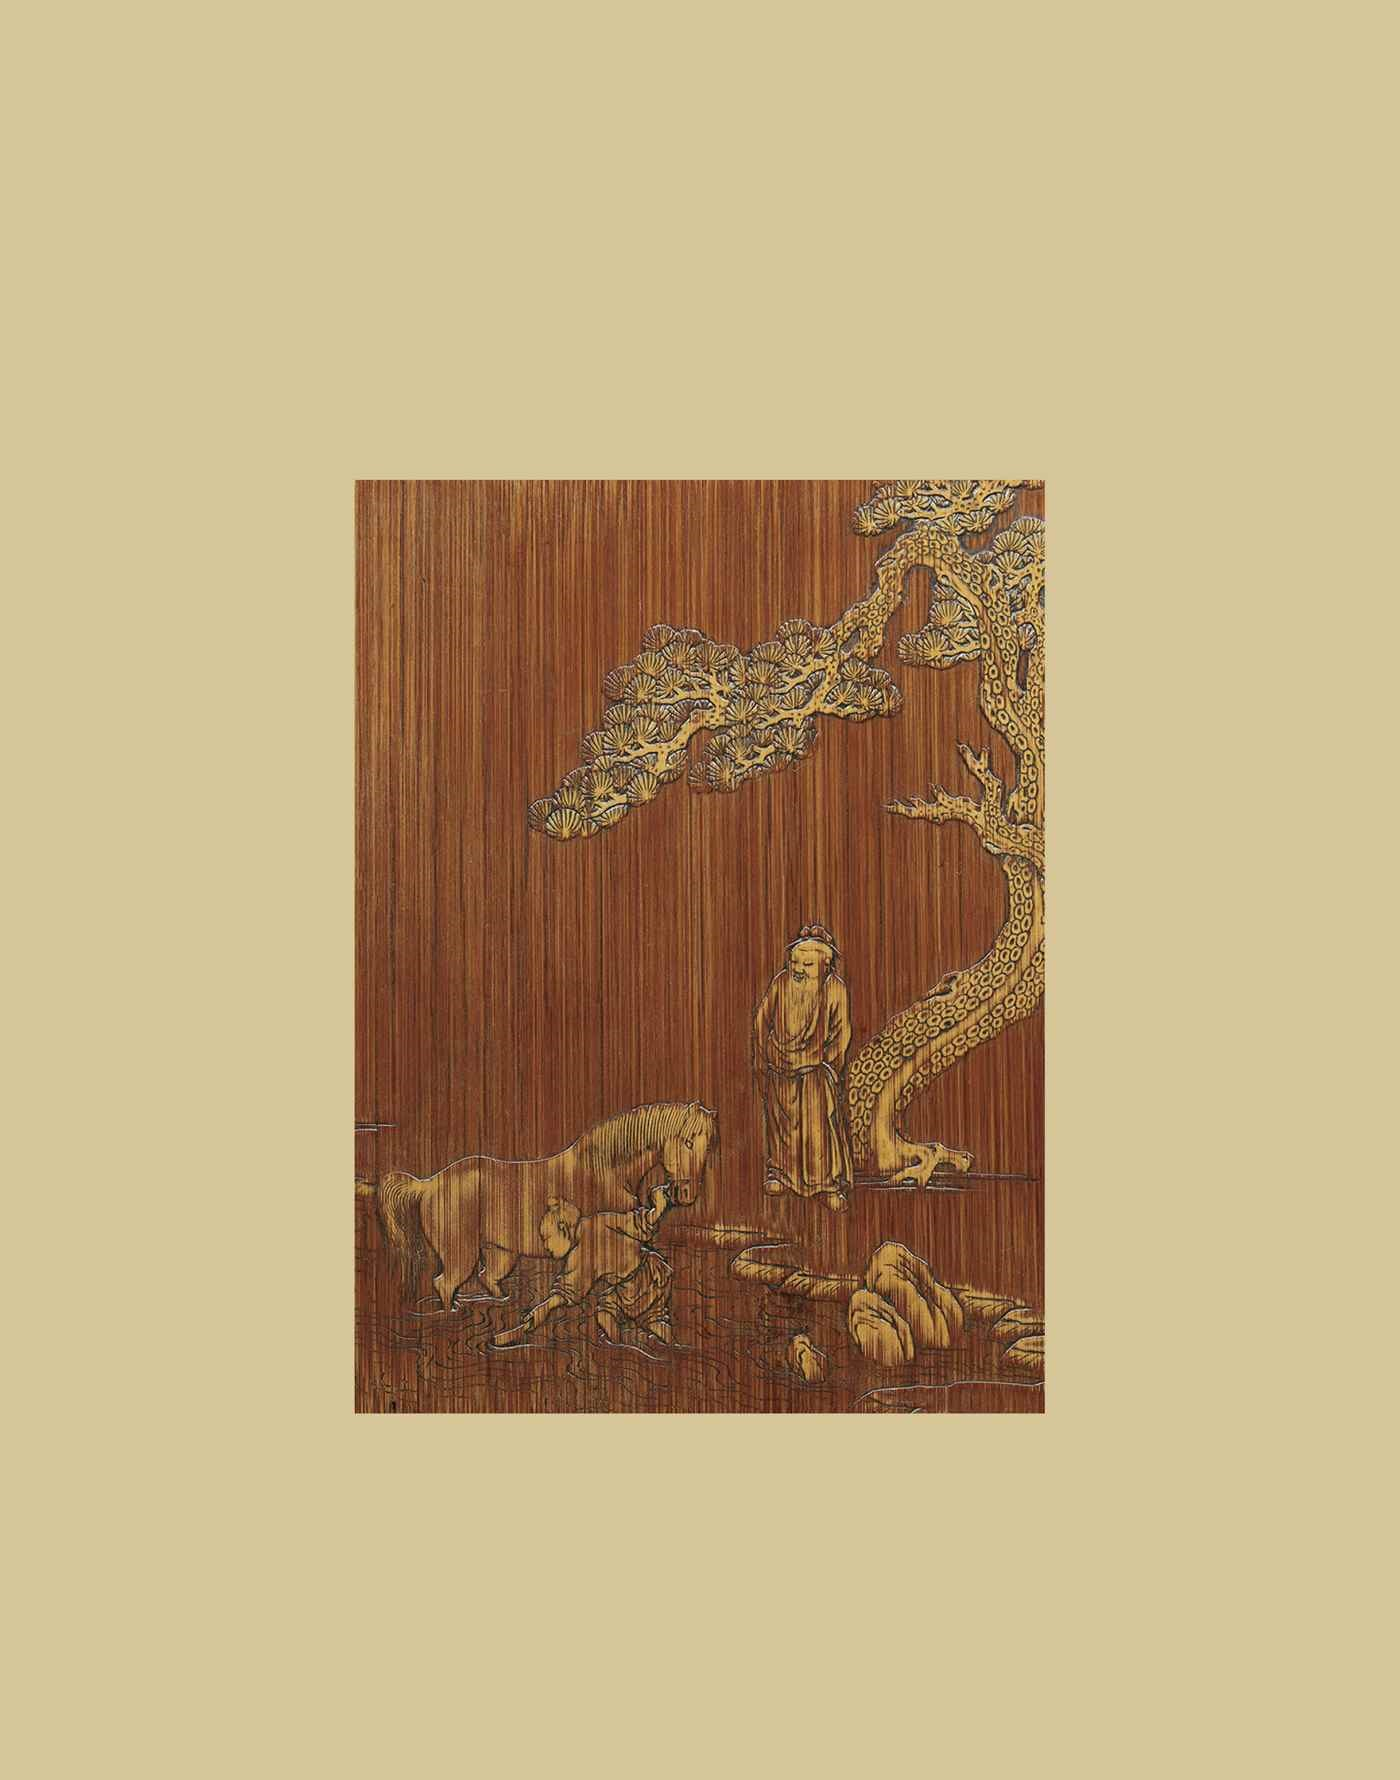 The Feng Wen Tang Collection O auction at Christies